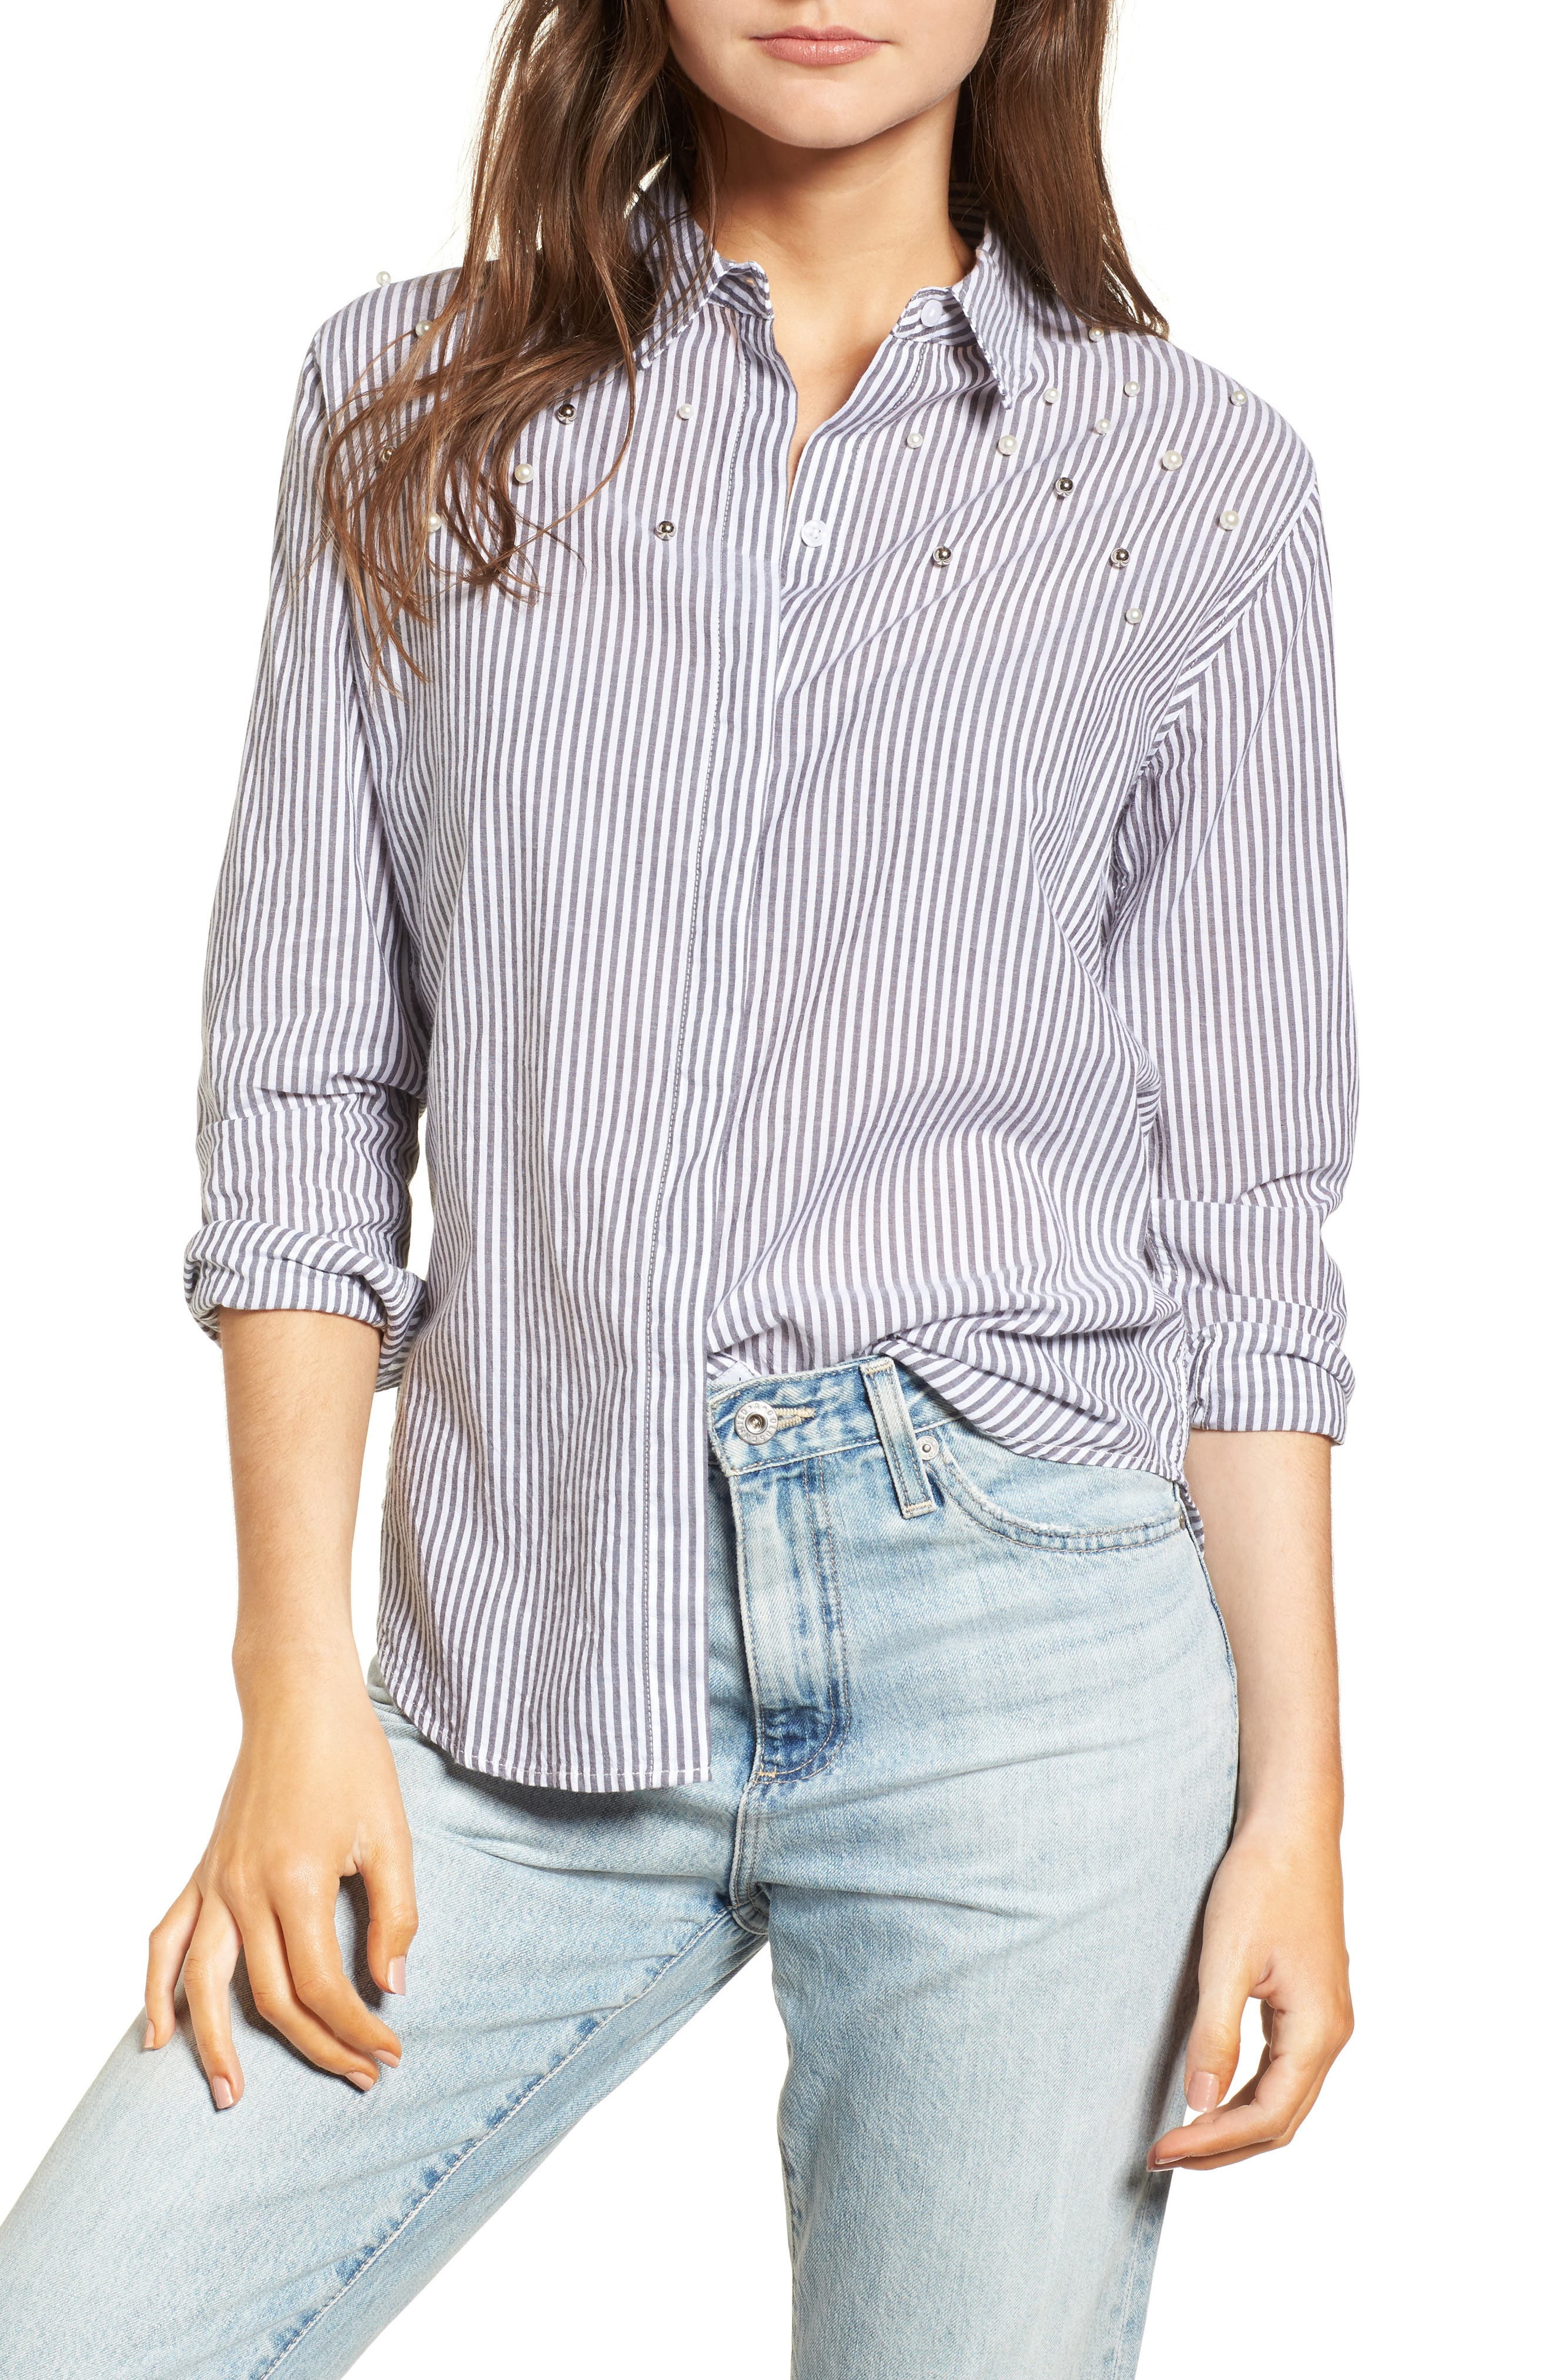 Taylor Embellished Shirt,                             Main thumbnail 1, color,                             Florence Stripe Studded Pearls